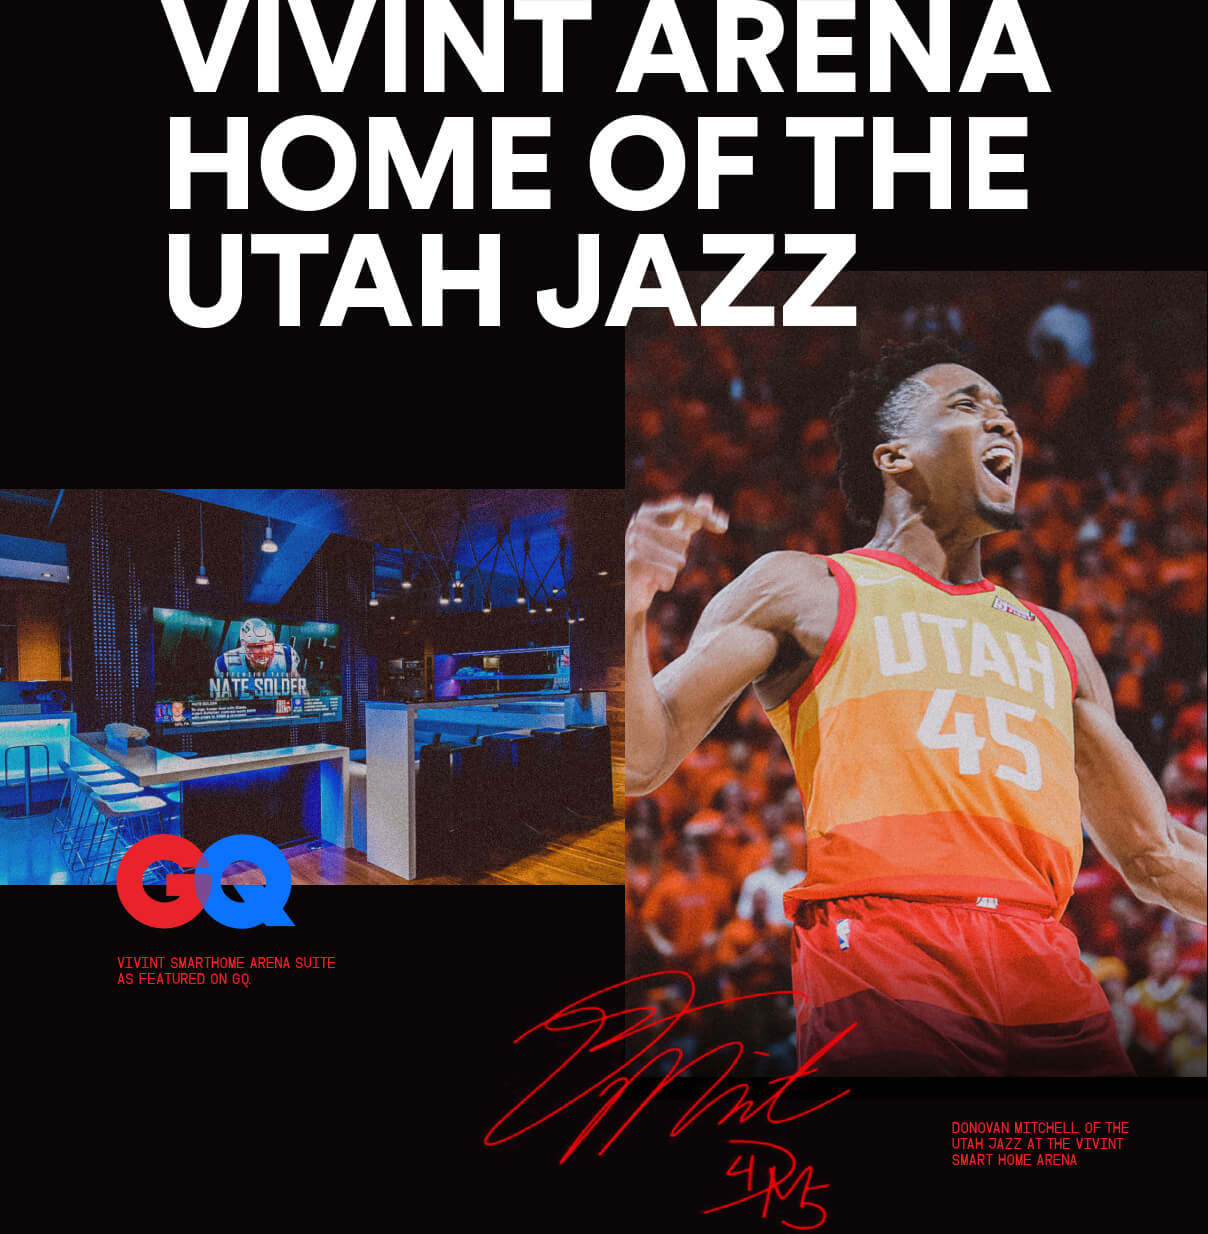 Vivint Arena Home of the Utah Jazz